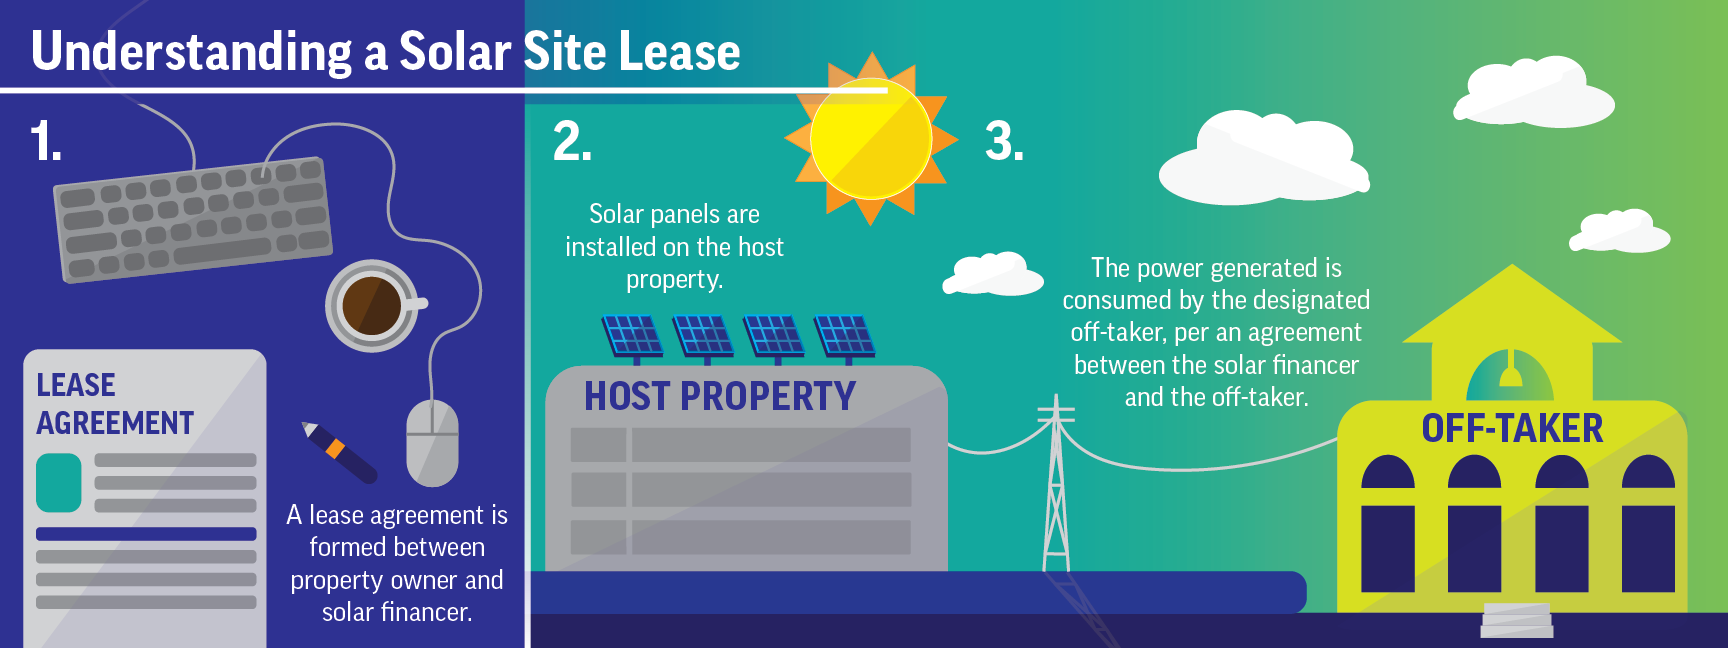 Site-Lease-Infographic